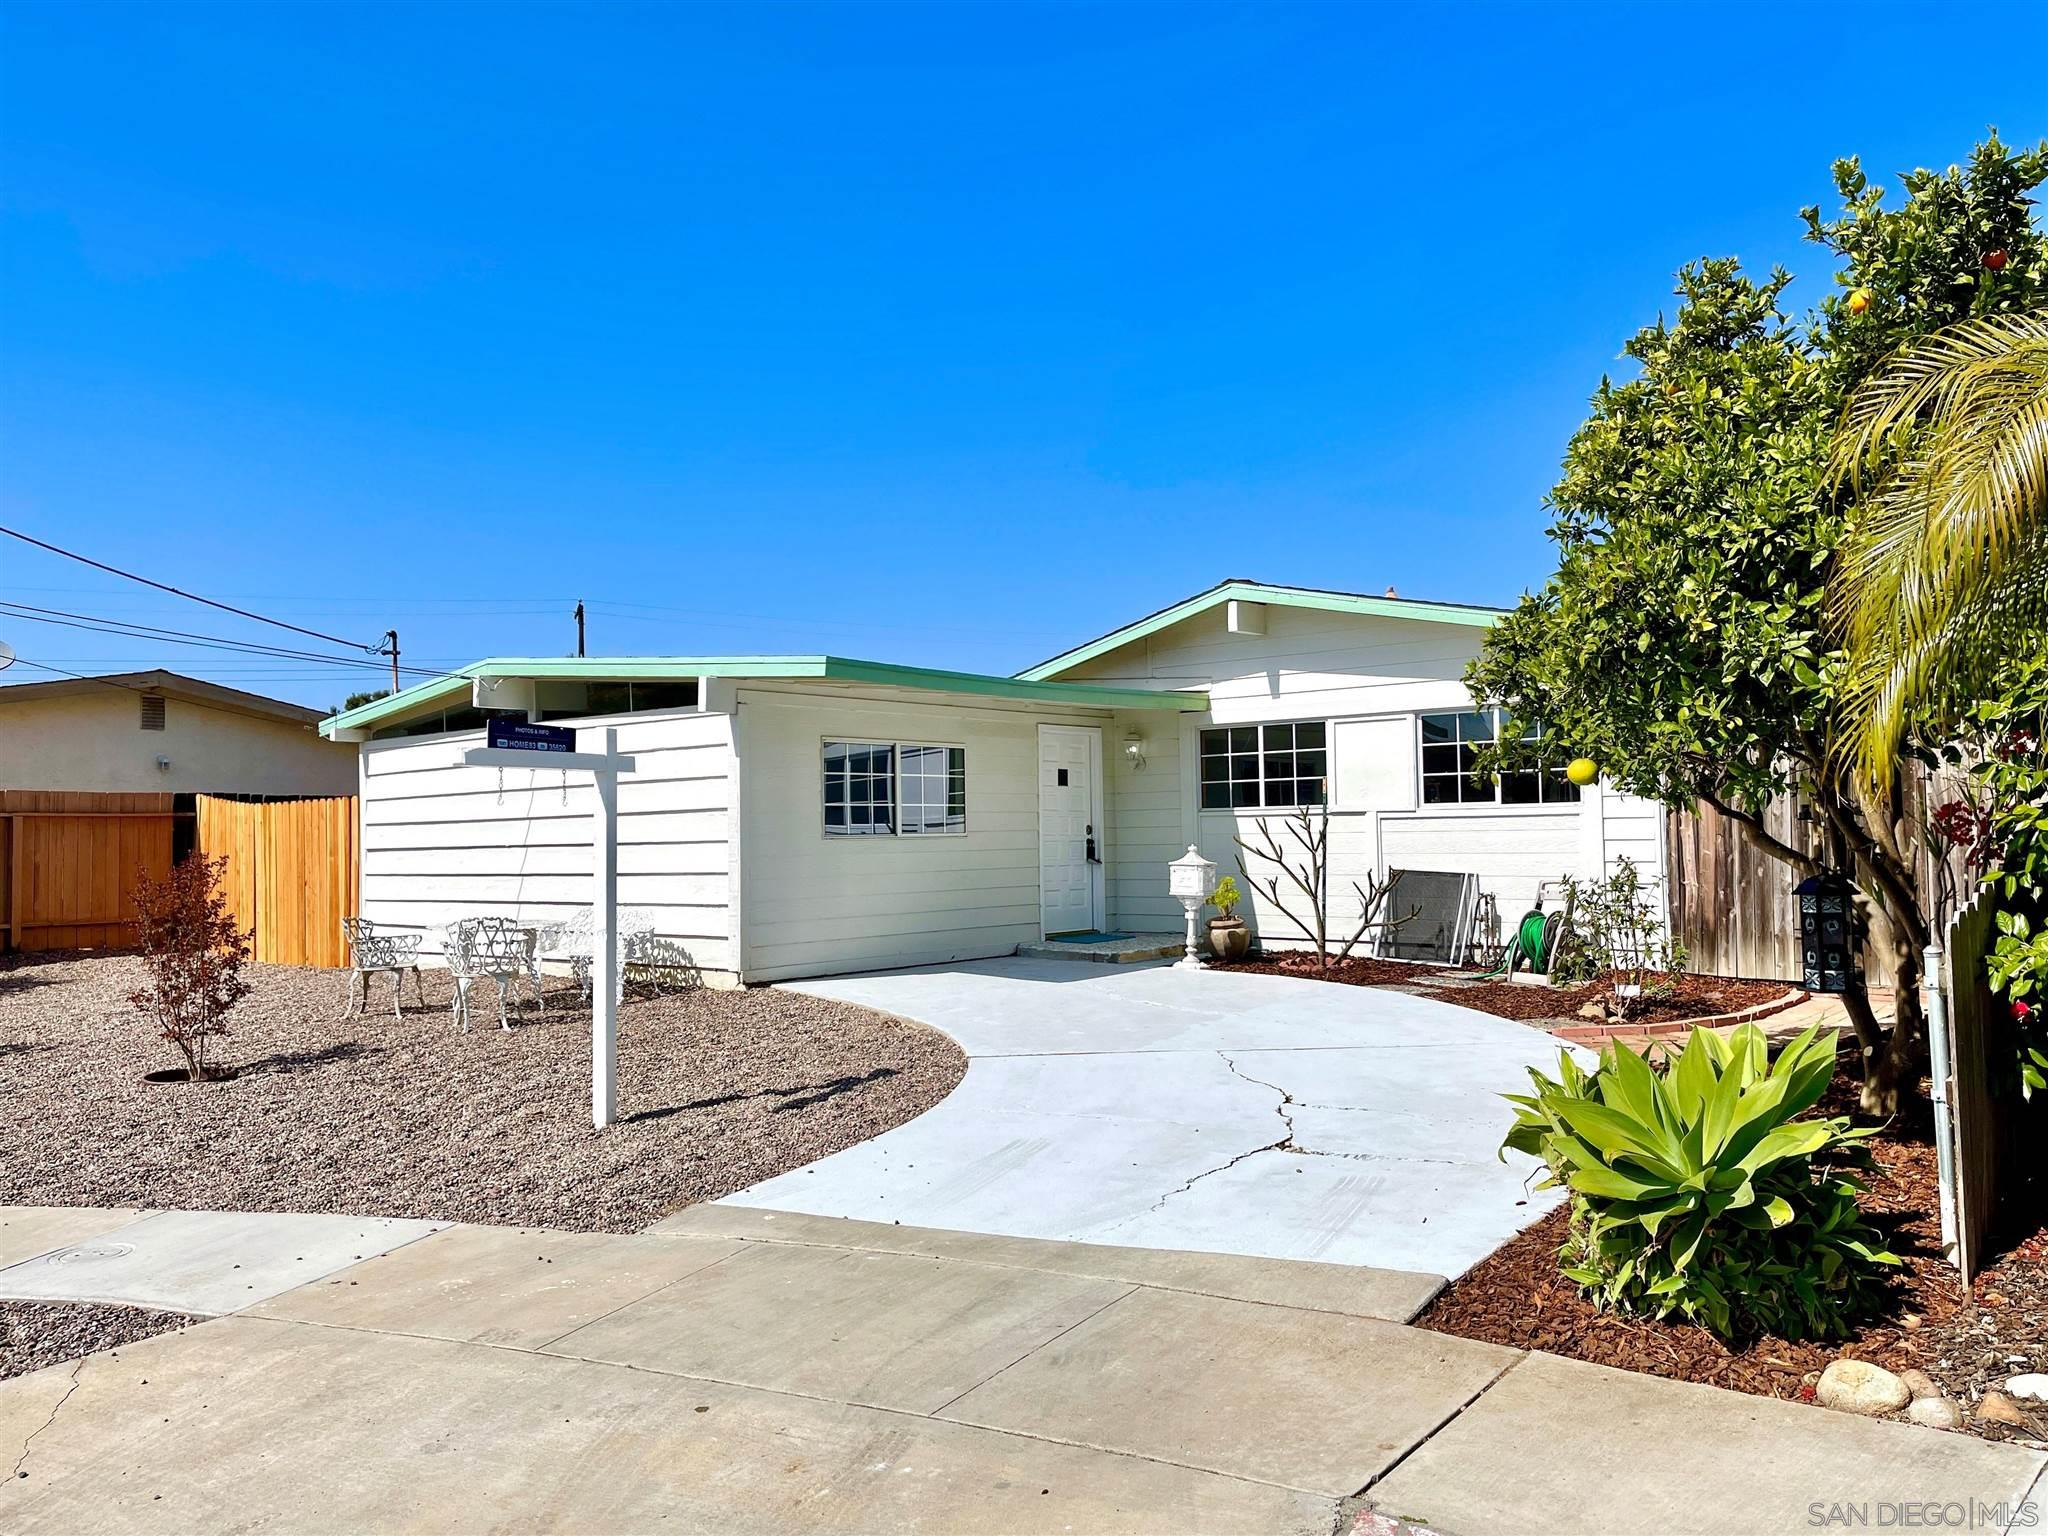 Desirable Clairemont Mesa West! Clairemont is conveniently located near all San Diego's main attractions. This spacious home is one of the largest and most private lots located in a double cul-de-sac street.  Mt. Armour turnkey home features a spacious floor plan with 5 bedrooms, 2 bath, newer roof, new flooring & paint and many detailed updates throughout.  Outdoor landscape includes many mature trees including fruit baring pomegranate, avocado, lemon, orange and much more.  The lot has great space and room to build or just enjoy in your own peaceful tranquil retreat.  Bonus/front room may be converted back to a garage/workspace.  The front lot appears to have room to build a garage if desired.  The side yard and back yard have room to add your own storage sheds. This home has been updated and staged and ready to call HOME for you and your FAMILY!Desirable Clairemont Mesa West! Clairemont is conveniently located near all San Diego's main attractions. This spacious home is one of the largest and most private lots located in a double cul-de-sac street.  Mt. Armour turnkey home features a spacious floor plan with 5 bedrooms, 2 bath, newer roof, new flooring & paint and many detailed updates throughout.  Outdoor landscape includes many mature trees including fruit baring pomegranate, avocado, lemon, orange and much more.  The lot has great space and room to build or just enjoy in your own peaceful tranquil retreat.  Bonus/front room may be converted back to a garage/workspace.  The front lot appears to have room to build a garage if desired.  The side yard and back yard have room to add your own storage sheds. This home has been updated and staged and ready to call HOME for you and your FAMILY!  No showings till home is staged and photographed.  We are aiming for May 10th.